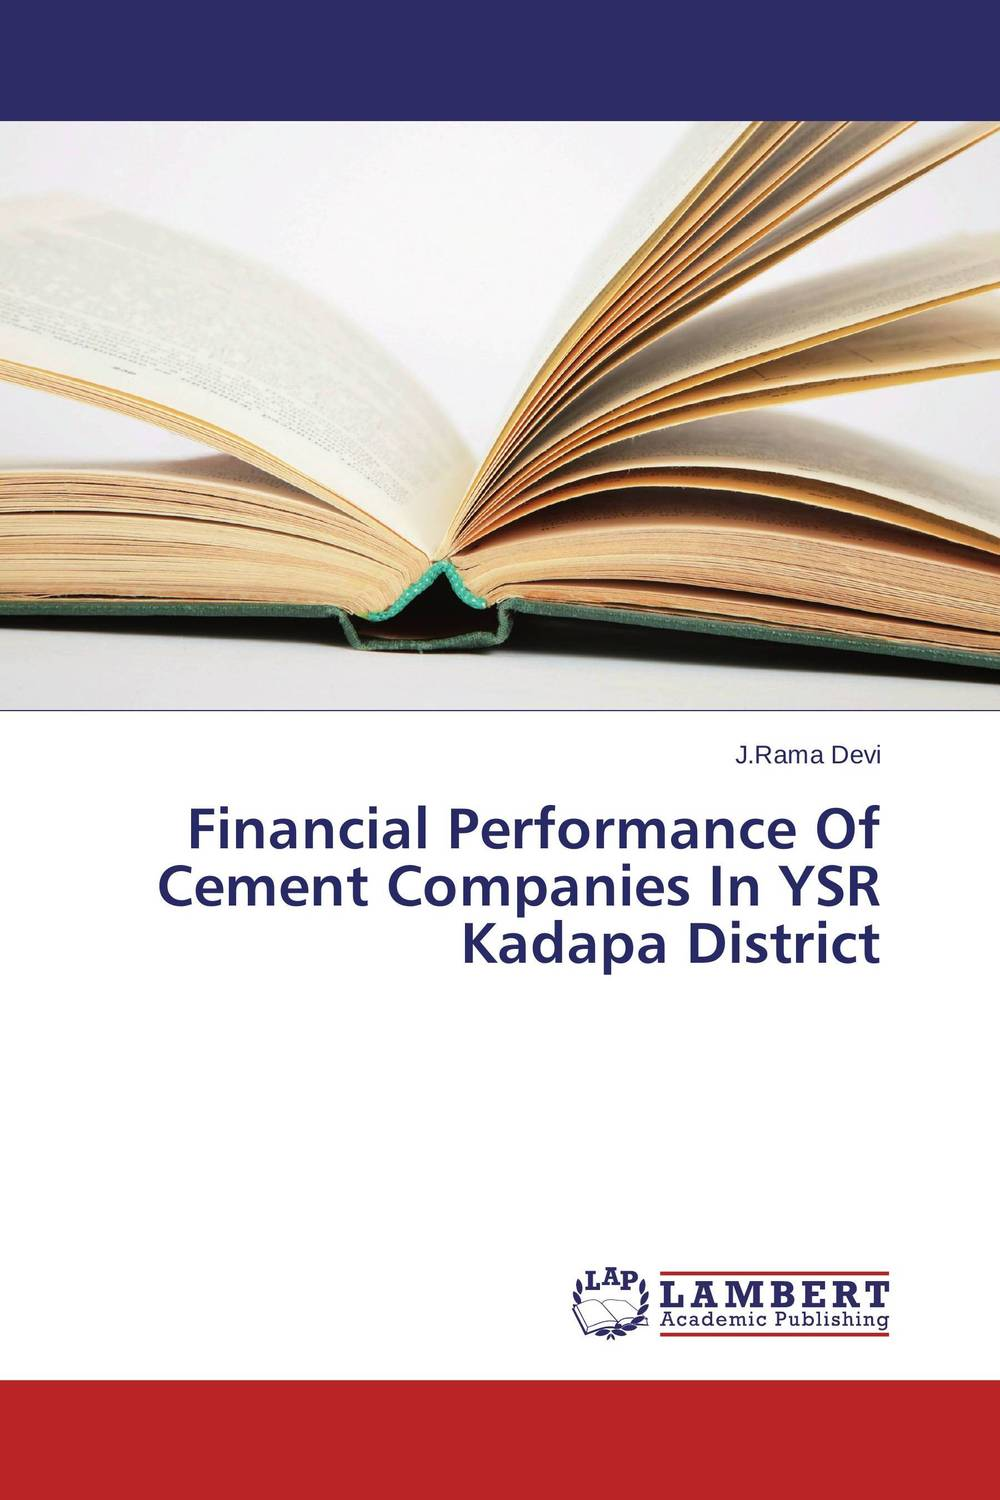 Financial Performance Of Cement Companies In YSR Kadapa District financial performance of lanco industries limited in chittoor district